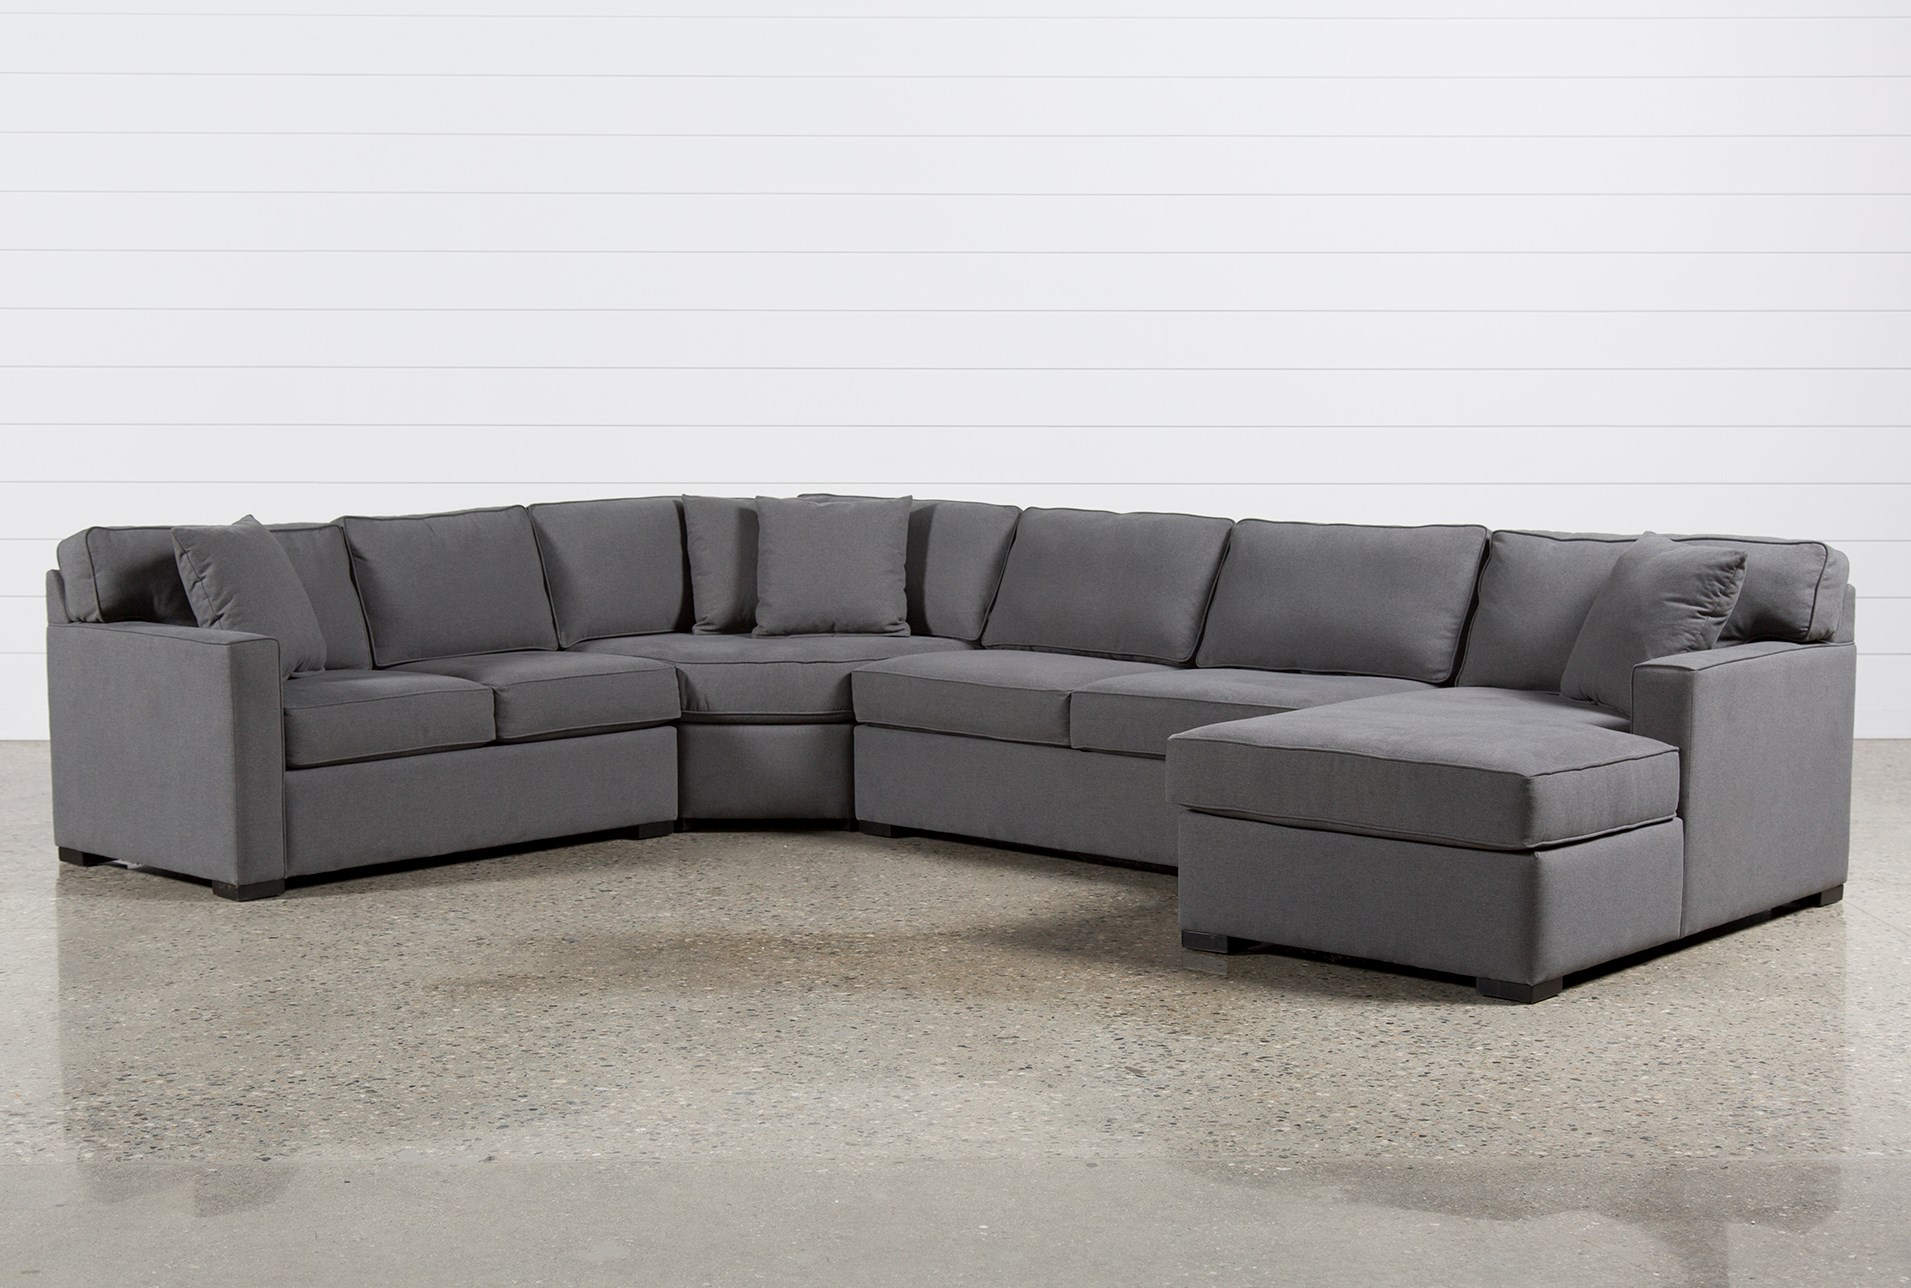 Alder 4 piece sectional qty 1 has been successfully added to your cart